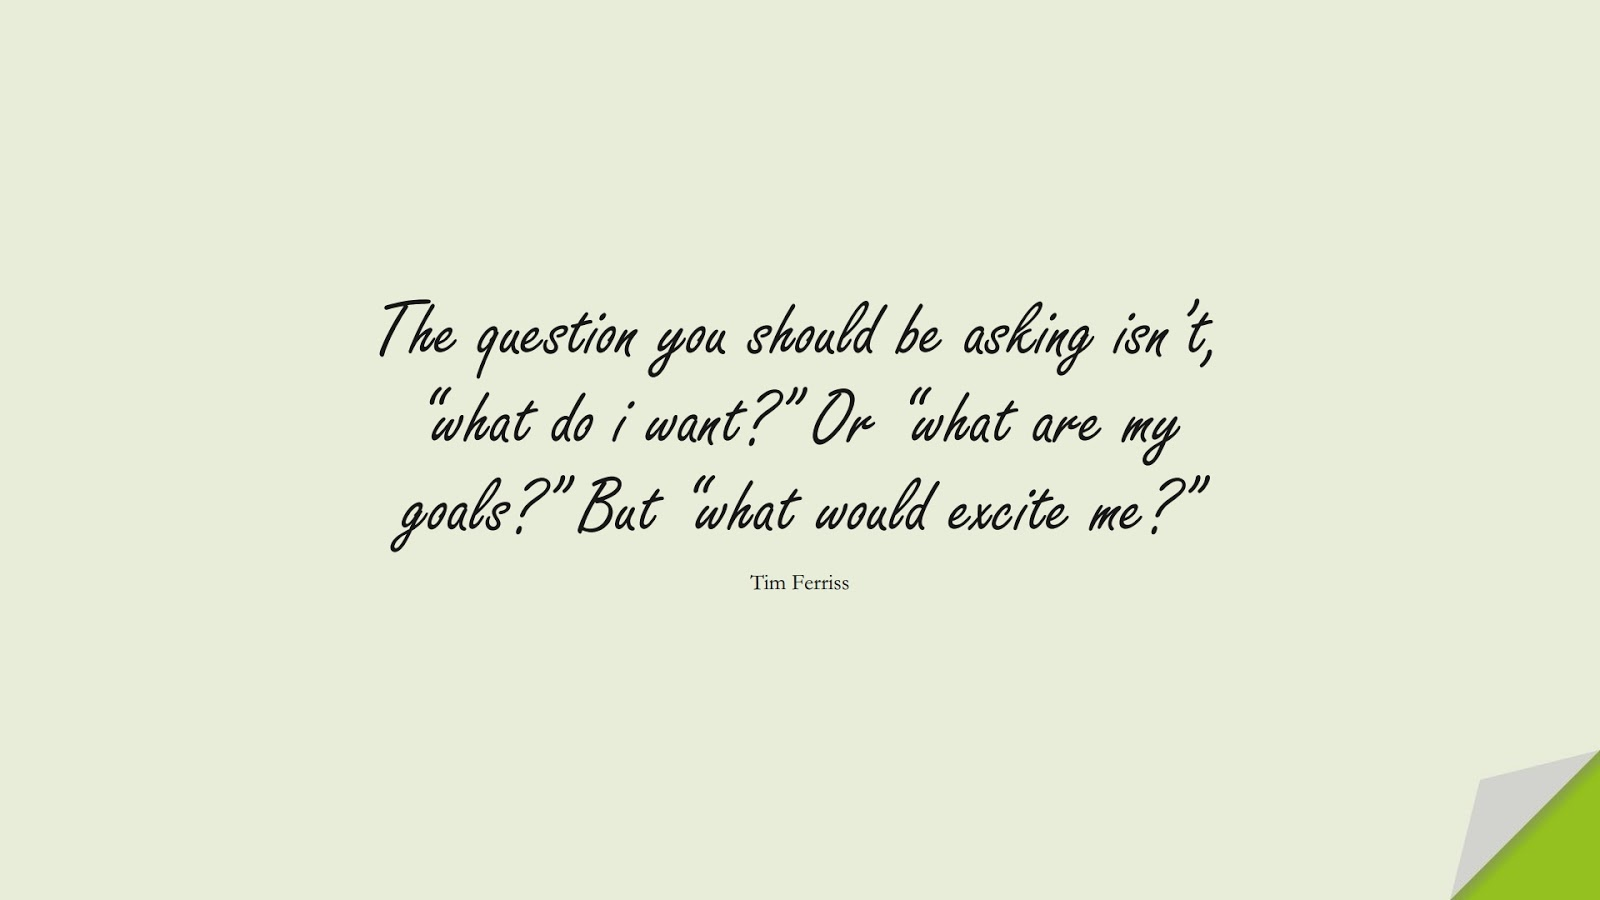 """The question you should be asking isn't, """"what do i want?"""" Or """"what are my goals?"""" But """"what would excite me?"""" (Tim Ferriss);  #TimFerrissQuotes"""